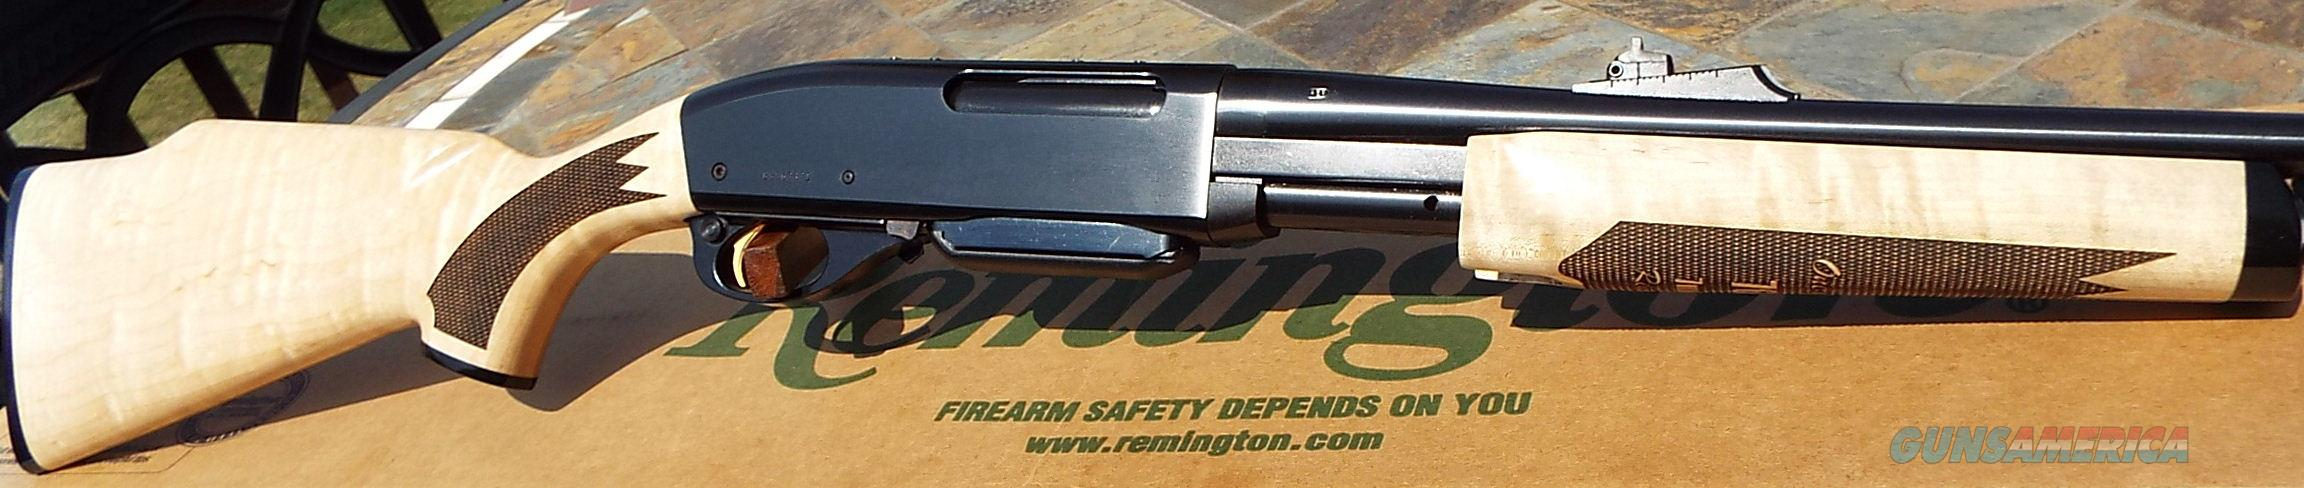 "Ltd Edition Remington 7600 MAPLE  7mm-08  ""1 of 250""  New!   LAYAWAY OPTION  86269  Guns > Rifles > Remington Rifles - Modern > Other"